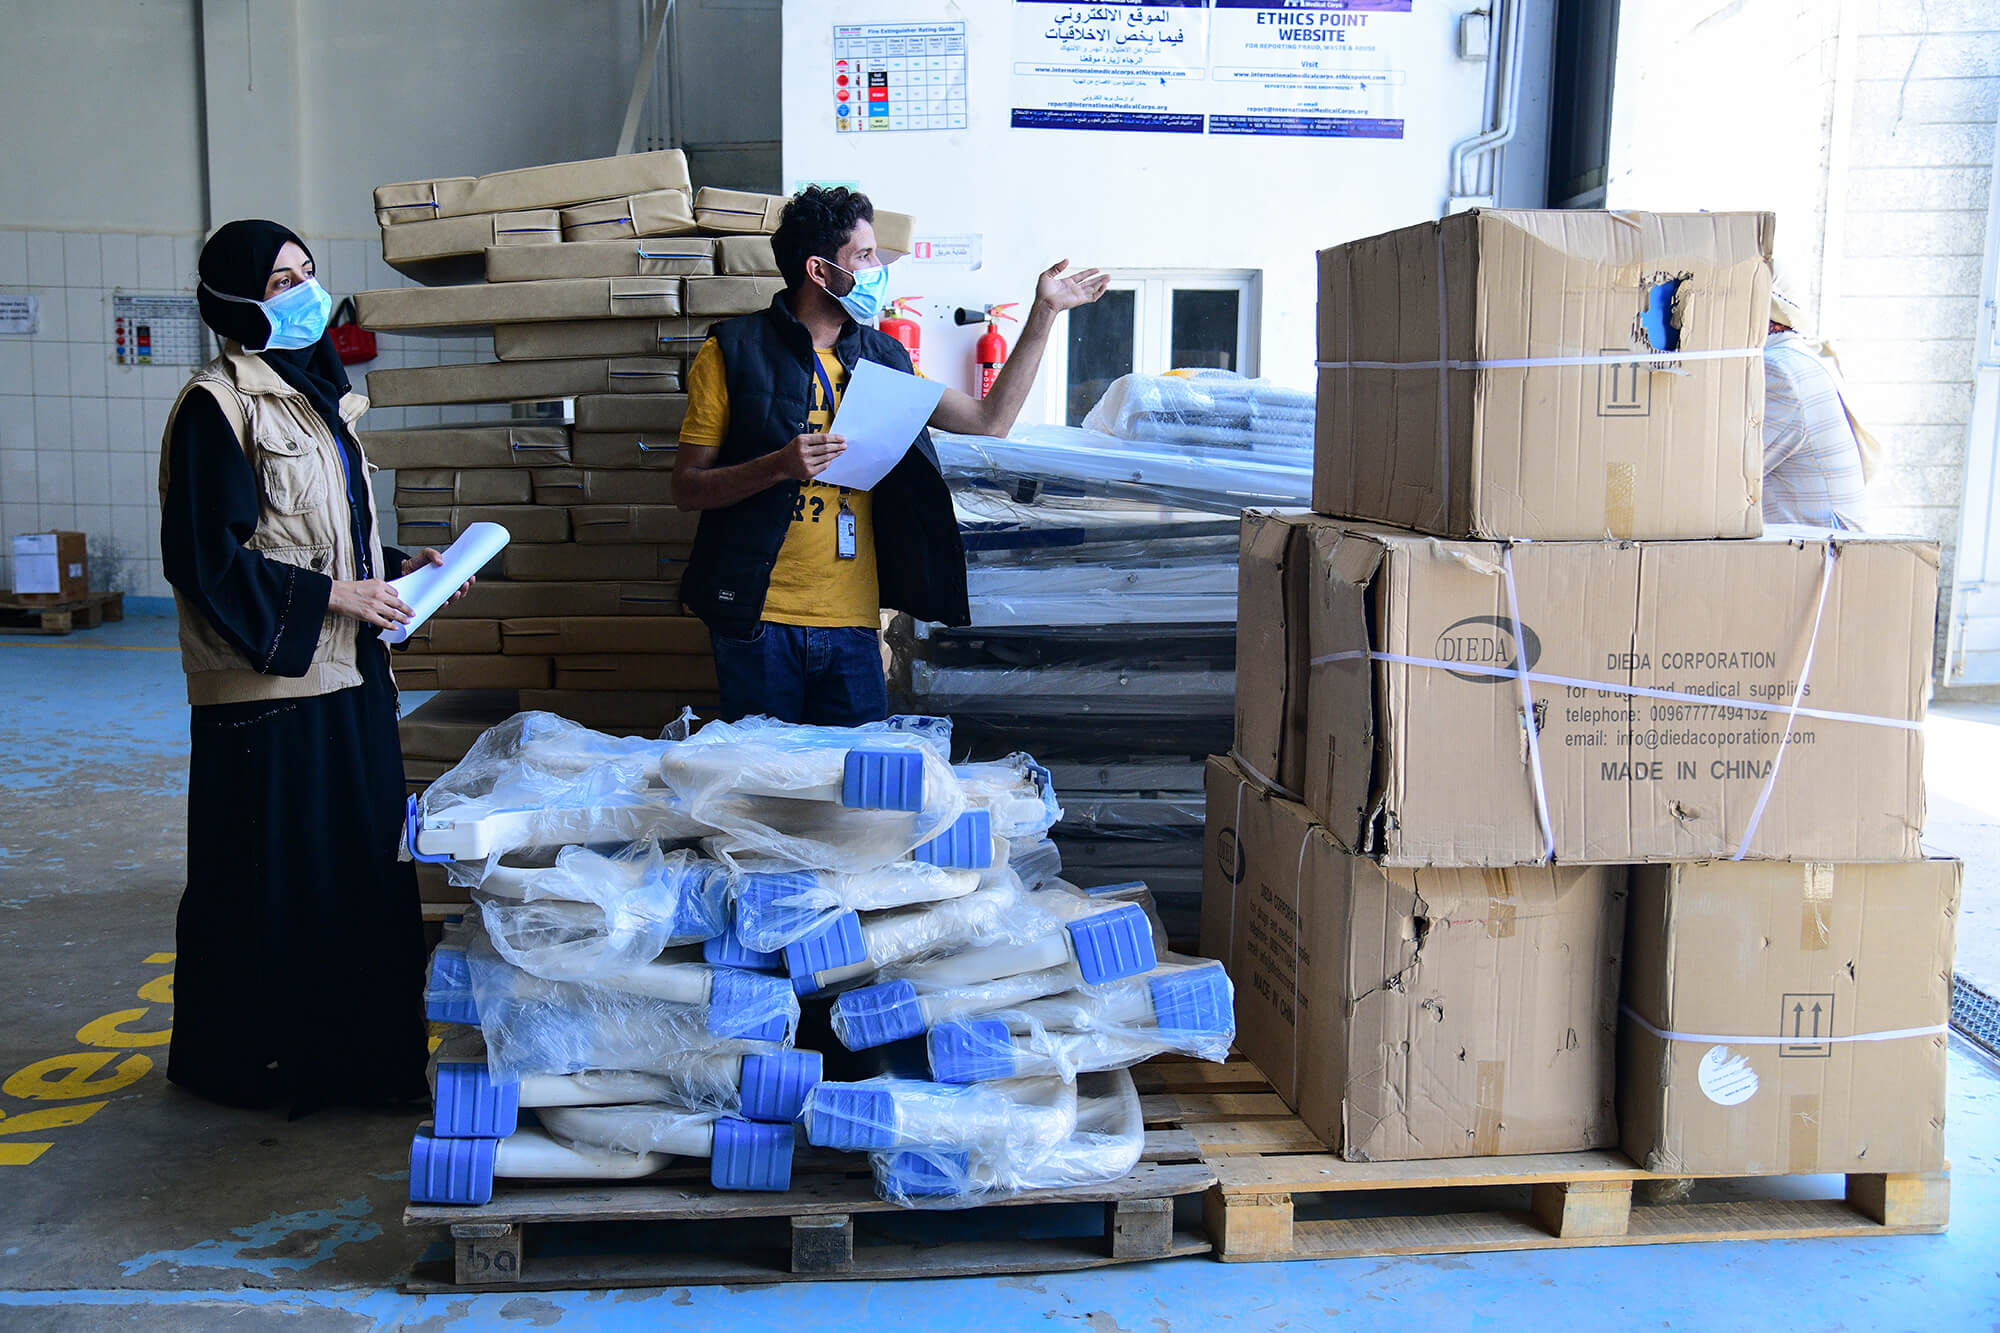 Our staff supervises the re-equipping and restocking of a health clinic we refurbished that serves one of the oldest orphanages in the Yemeni capital, Sana'a.